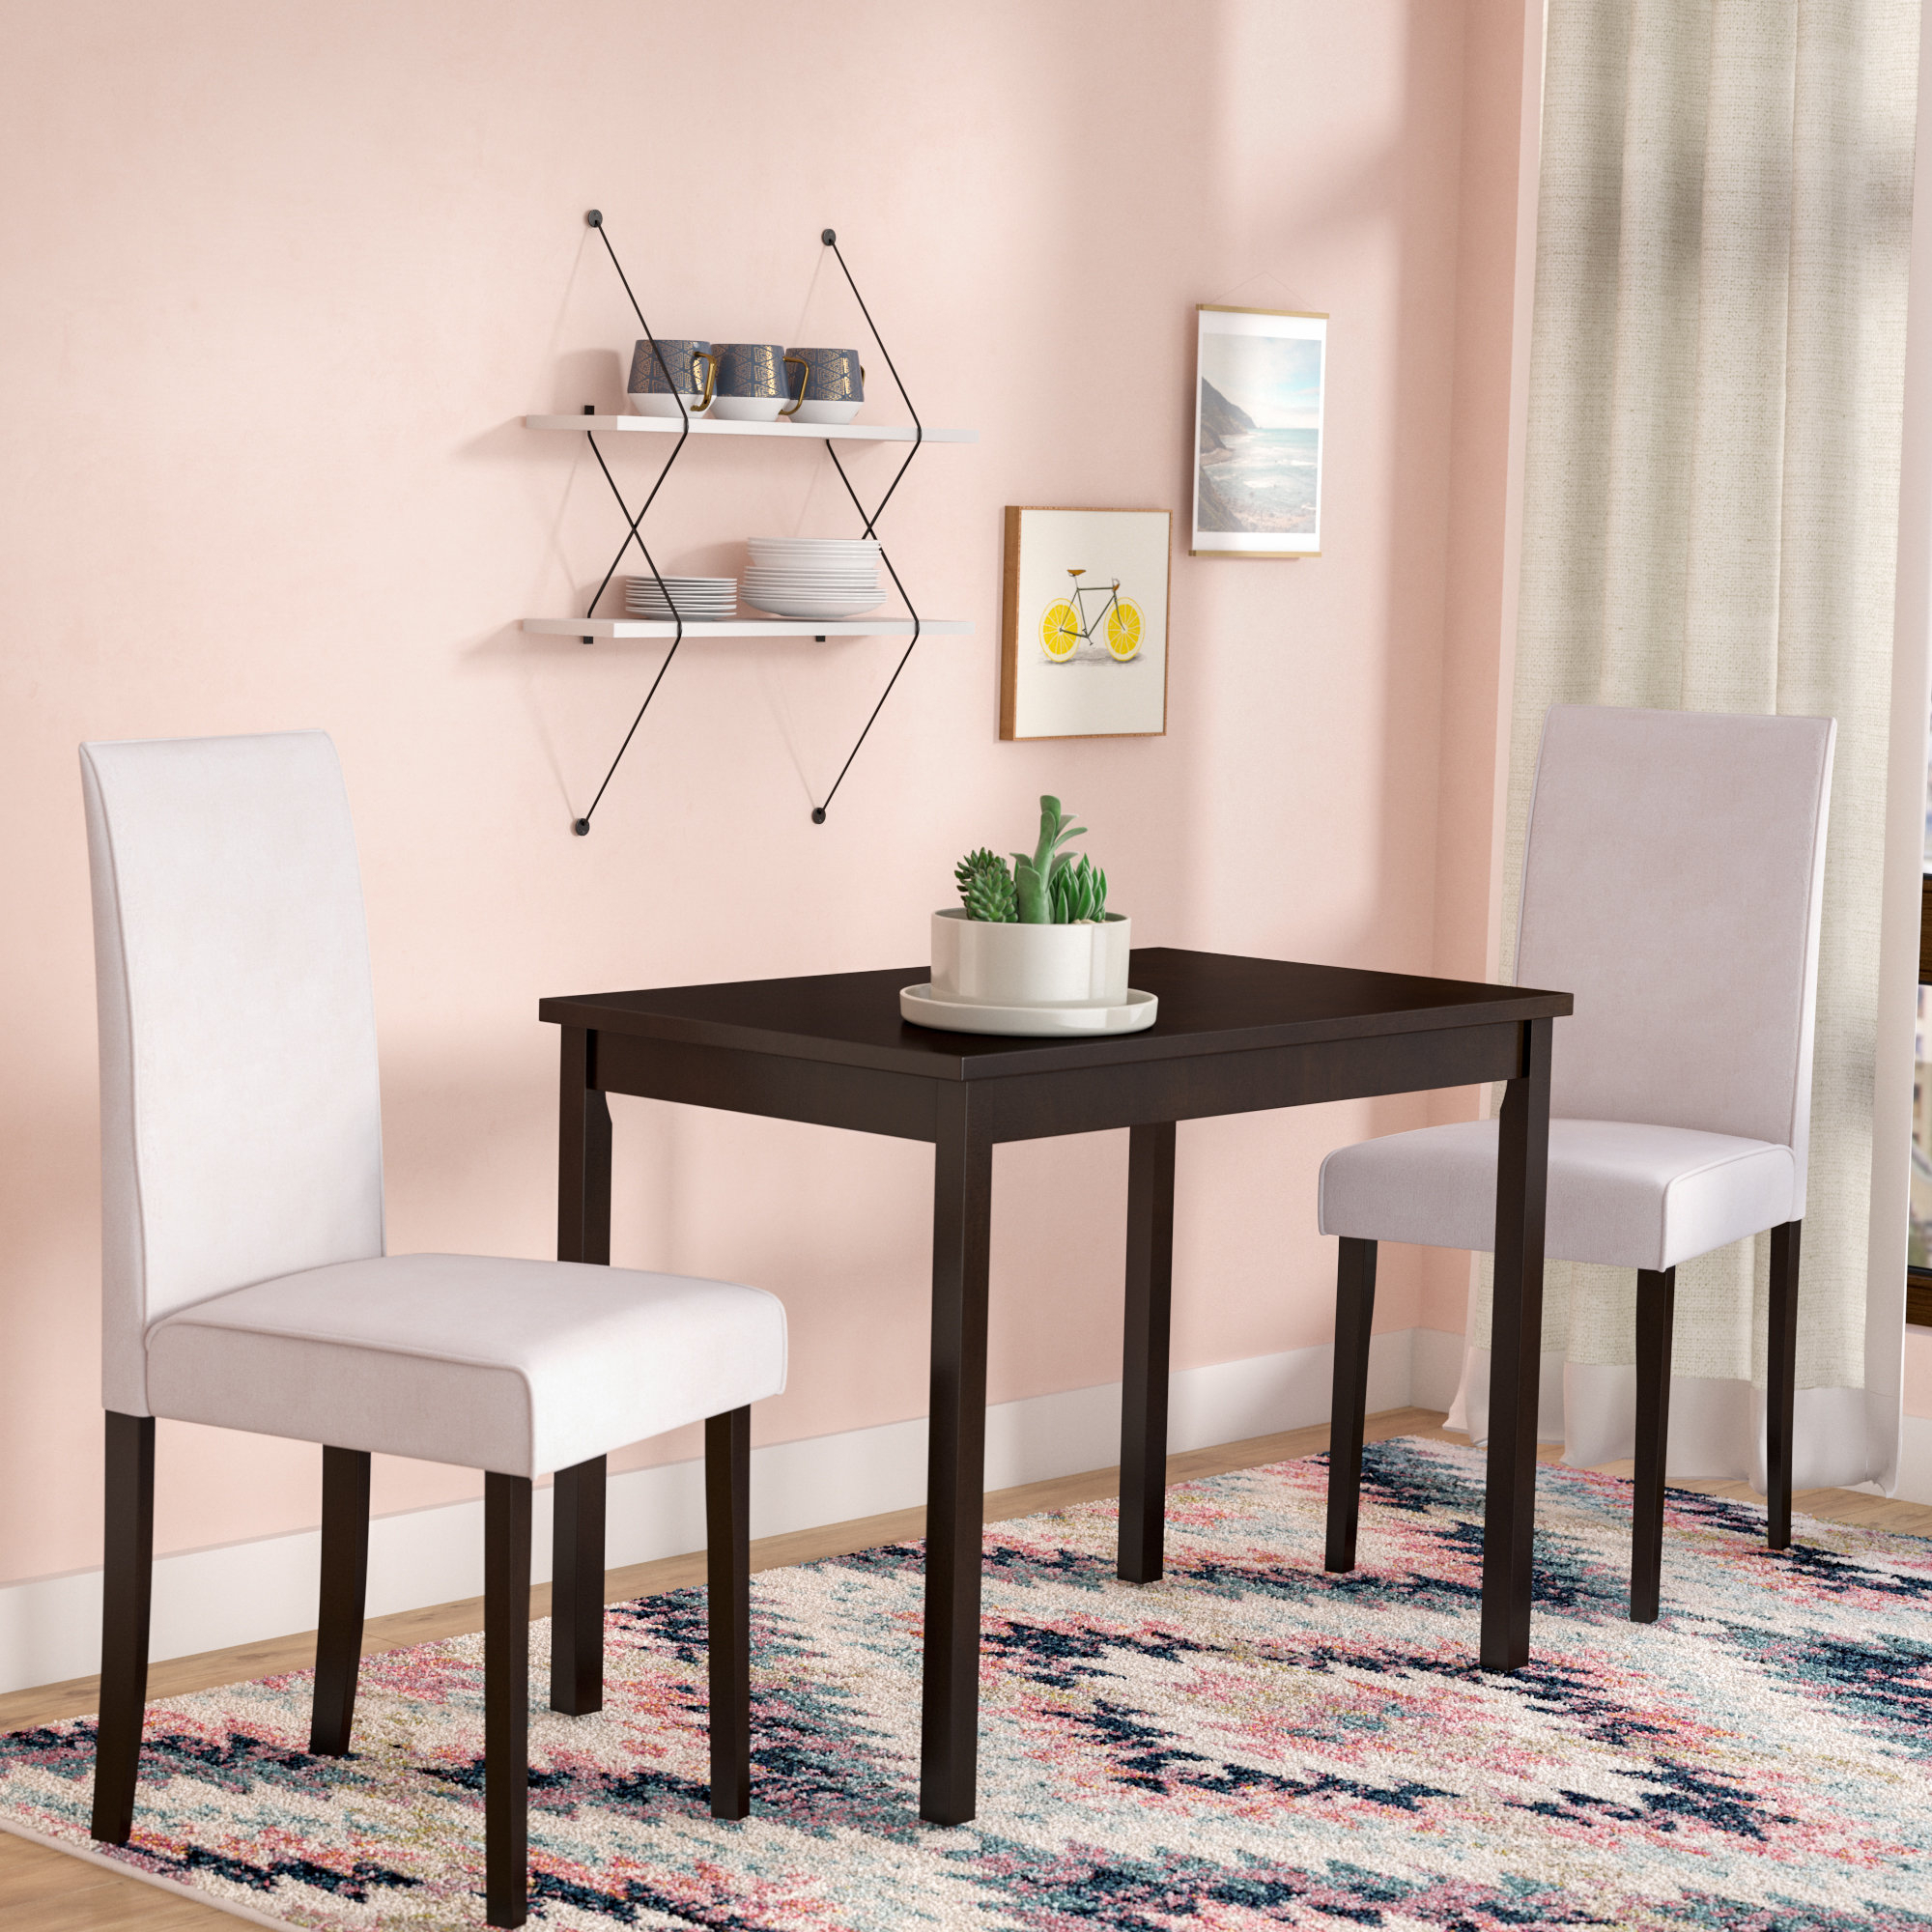 Darvell 3 Piece Dining Set Throughout Most Recent Baillie 3 Piece Dining Sets (View 6 of 20)